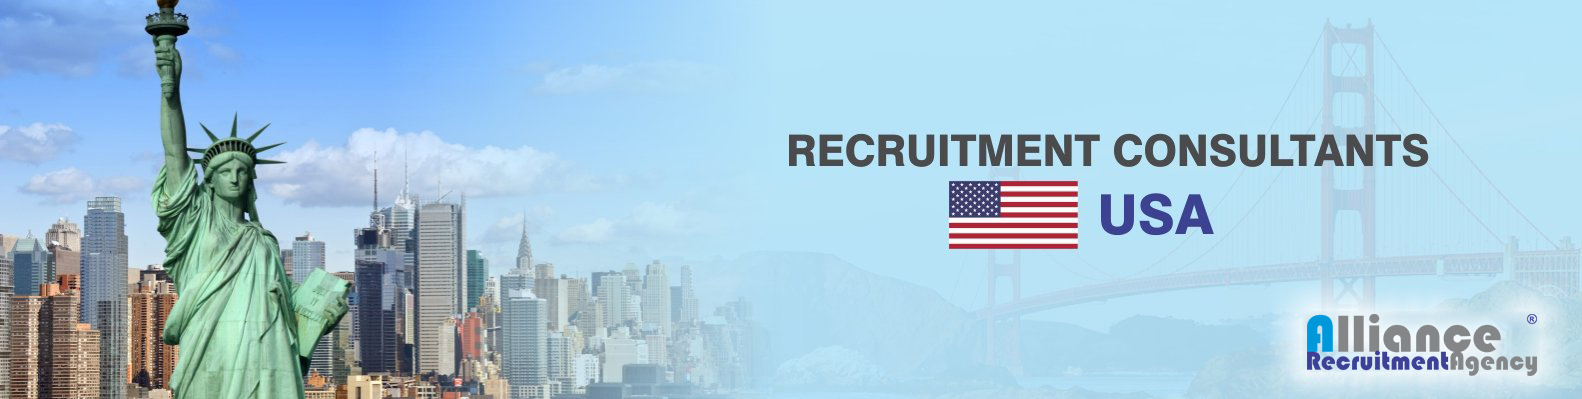 recruitment consultant usa